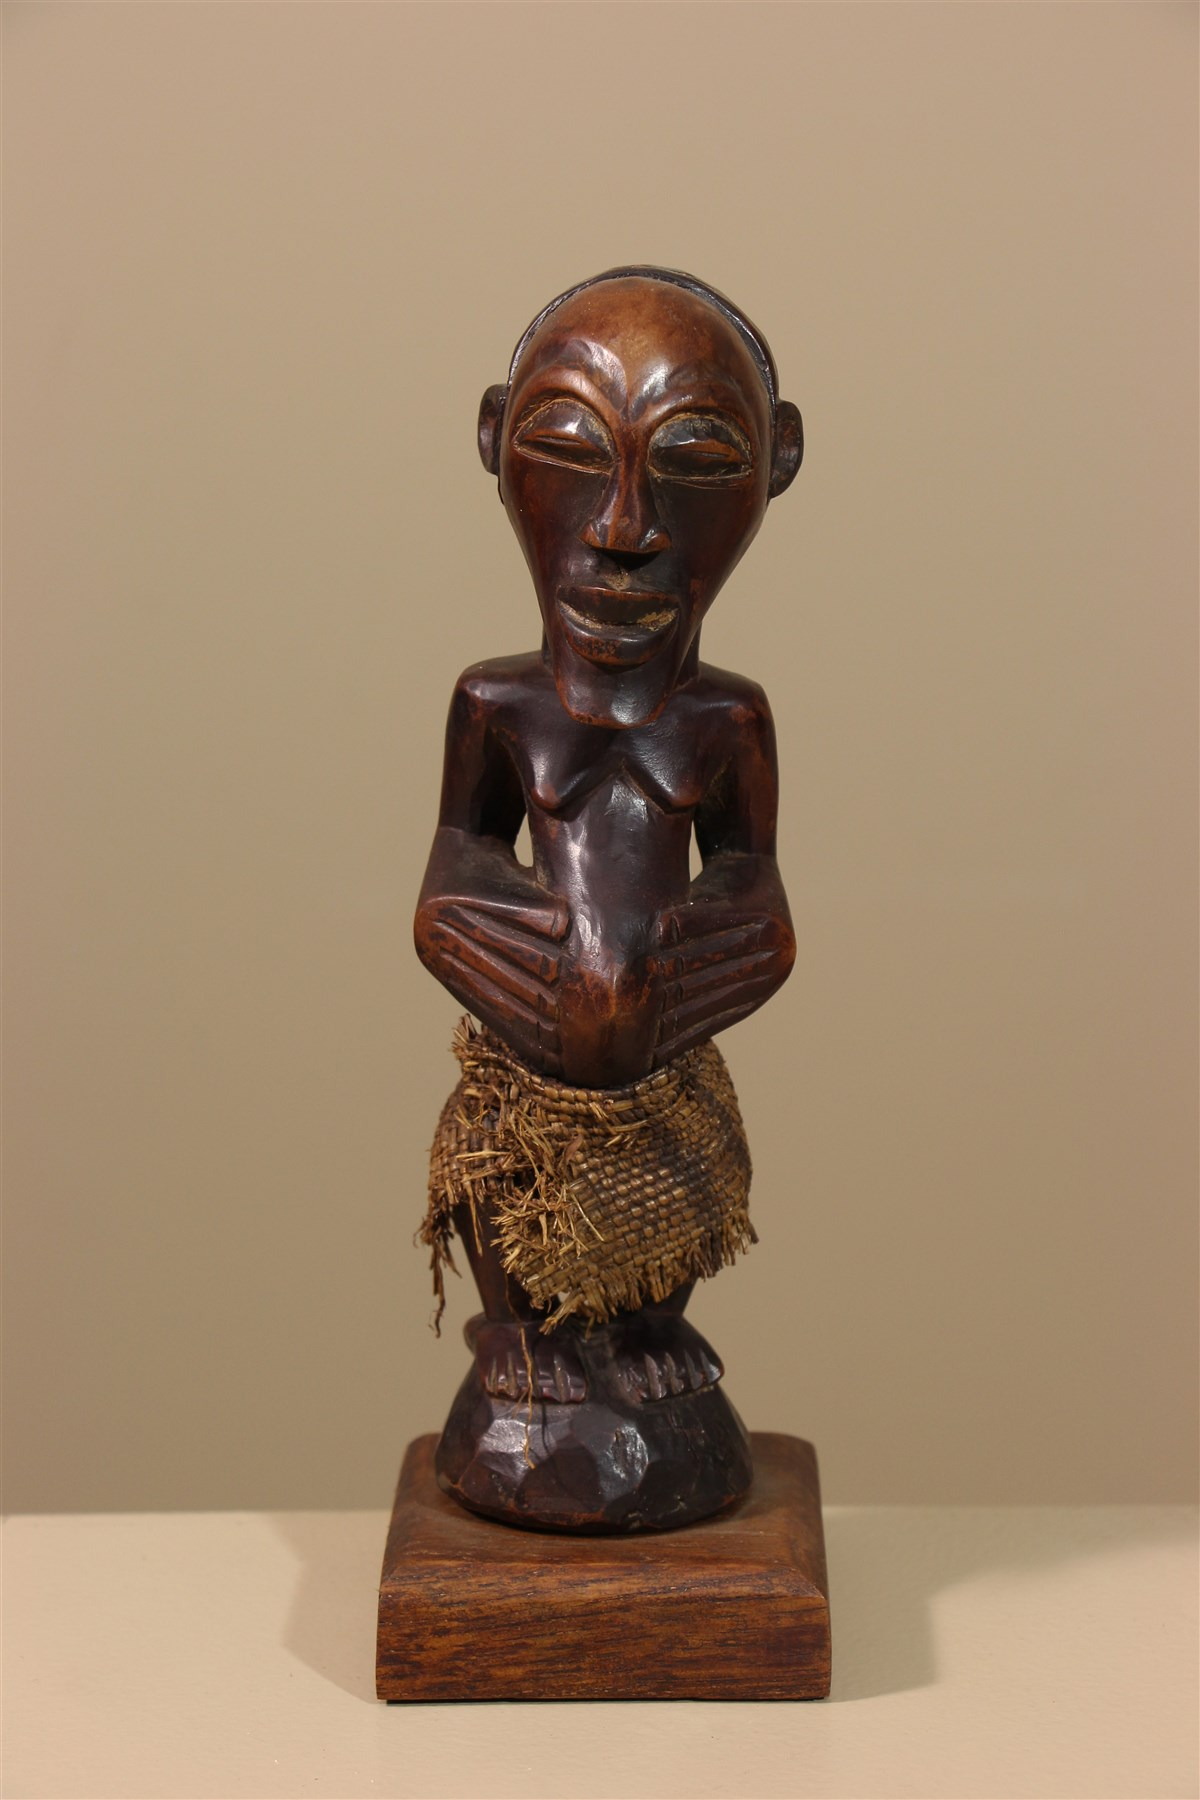 Statuette tribale Songye - Déco africaine - Art africain traditionnel